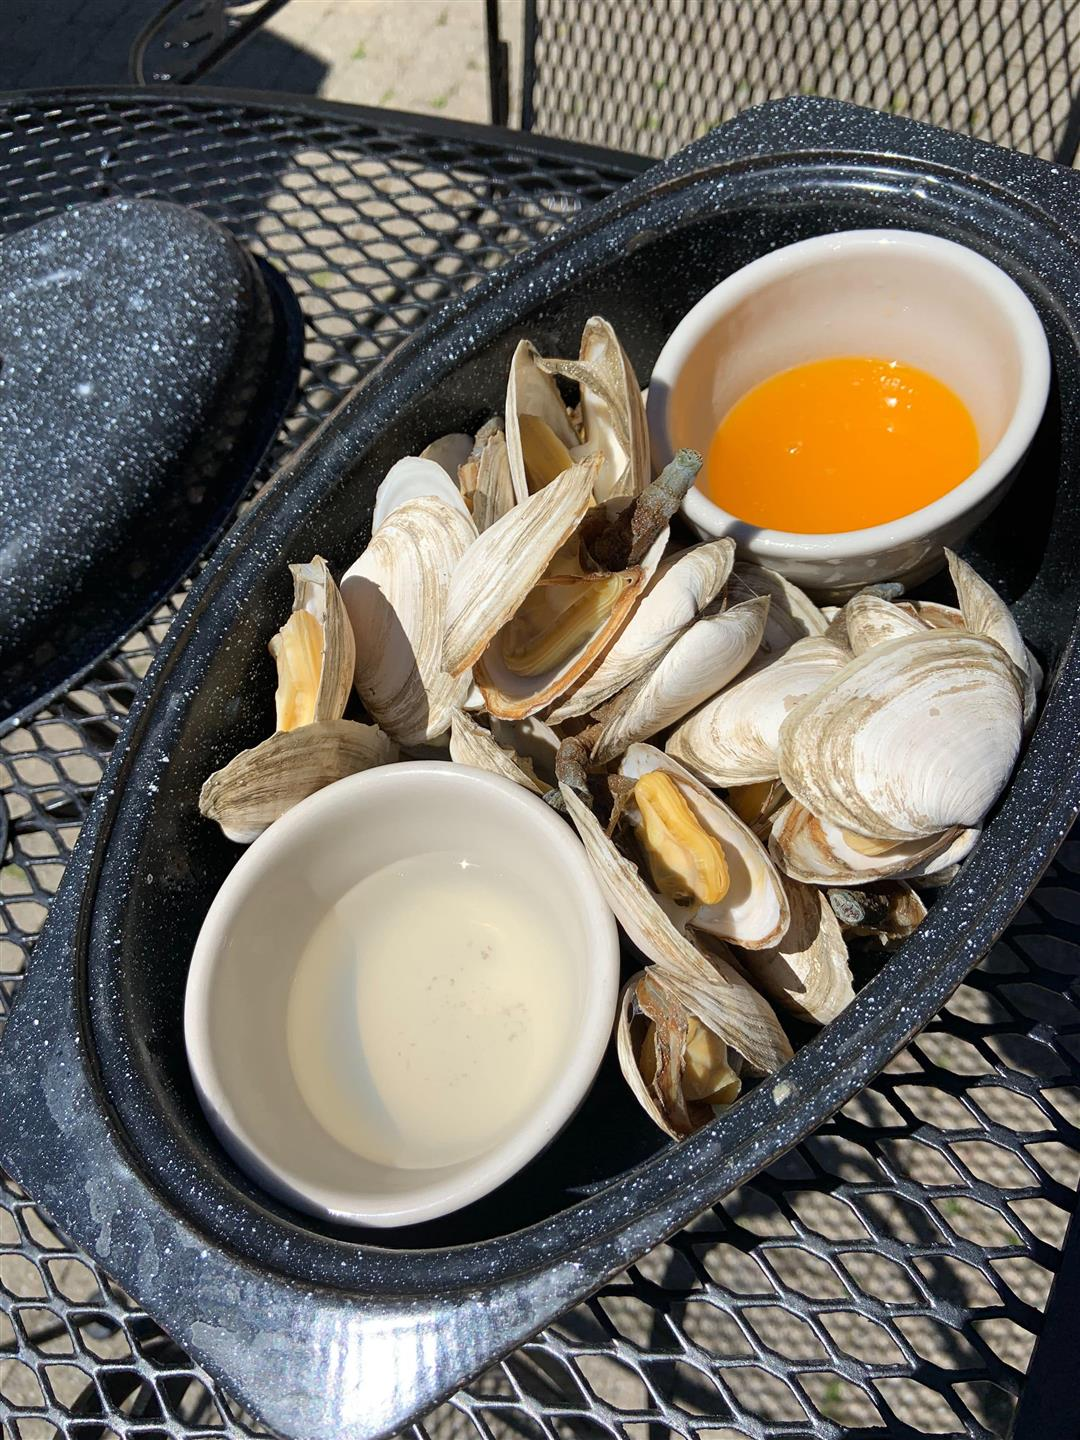 Bowl of steamers in pot with melted dipping sauce